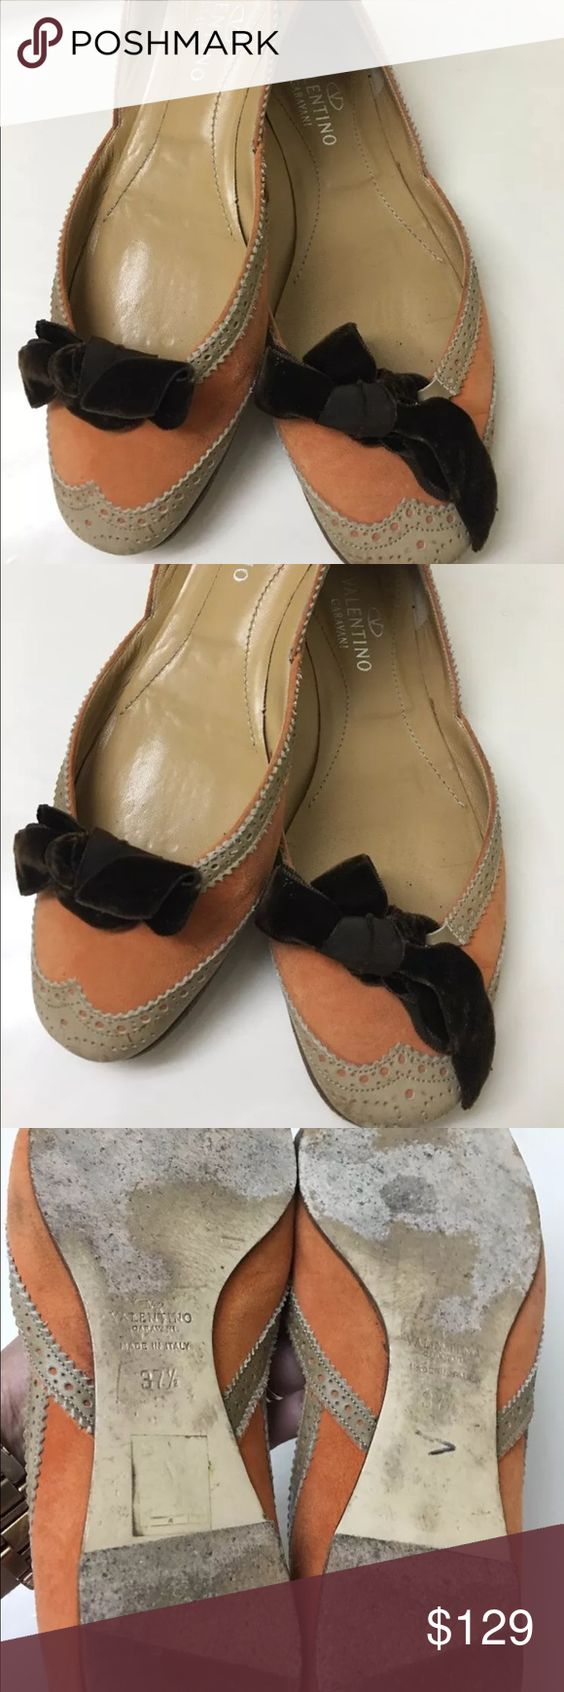 Valentino Garavani flat shoes size 37.5 Great quality shoes that has some gentle used,has superficial dirt that can be simply clean. Valentino Shoes Flats & Loafers